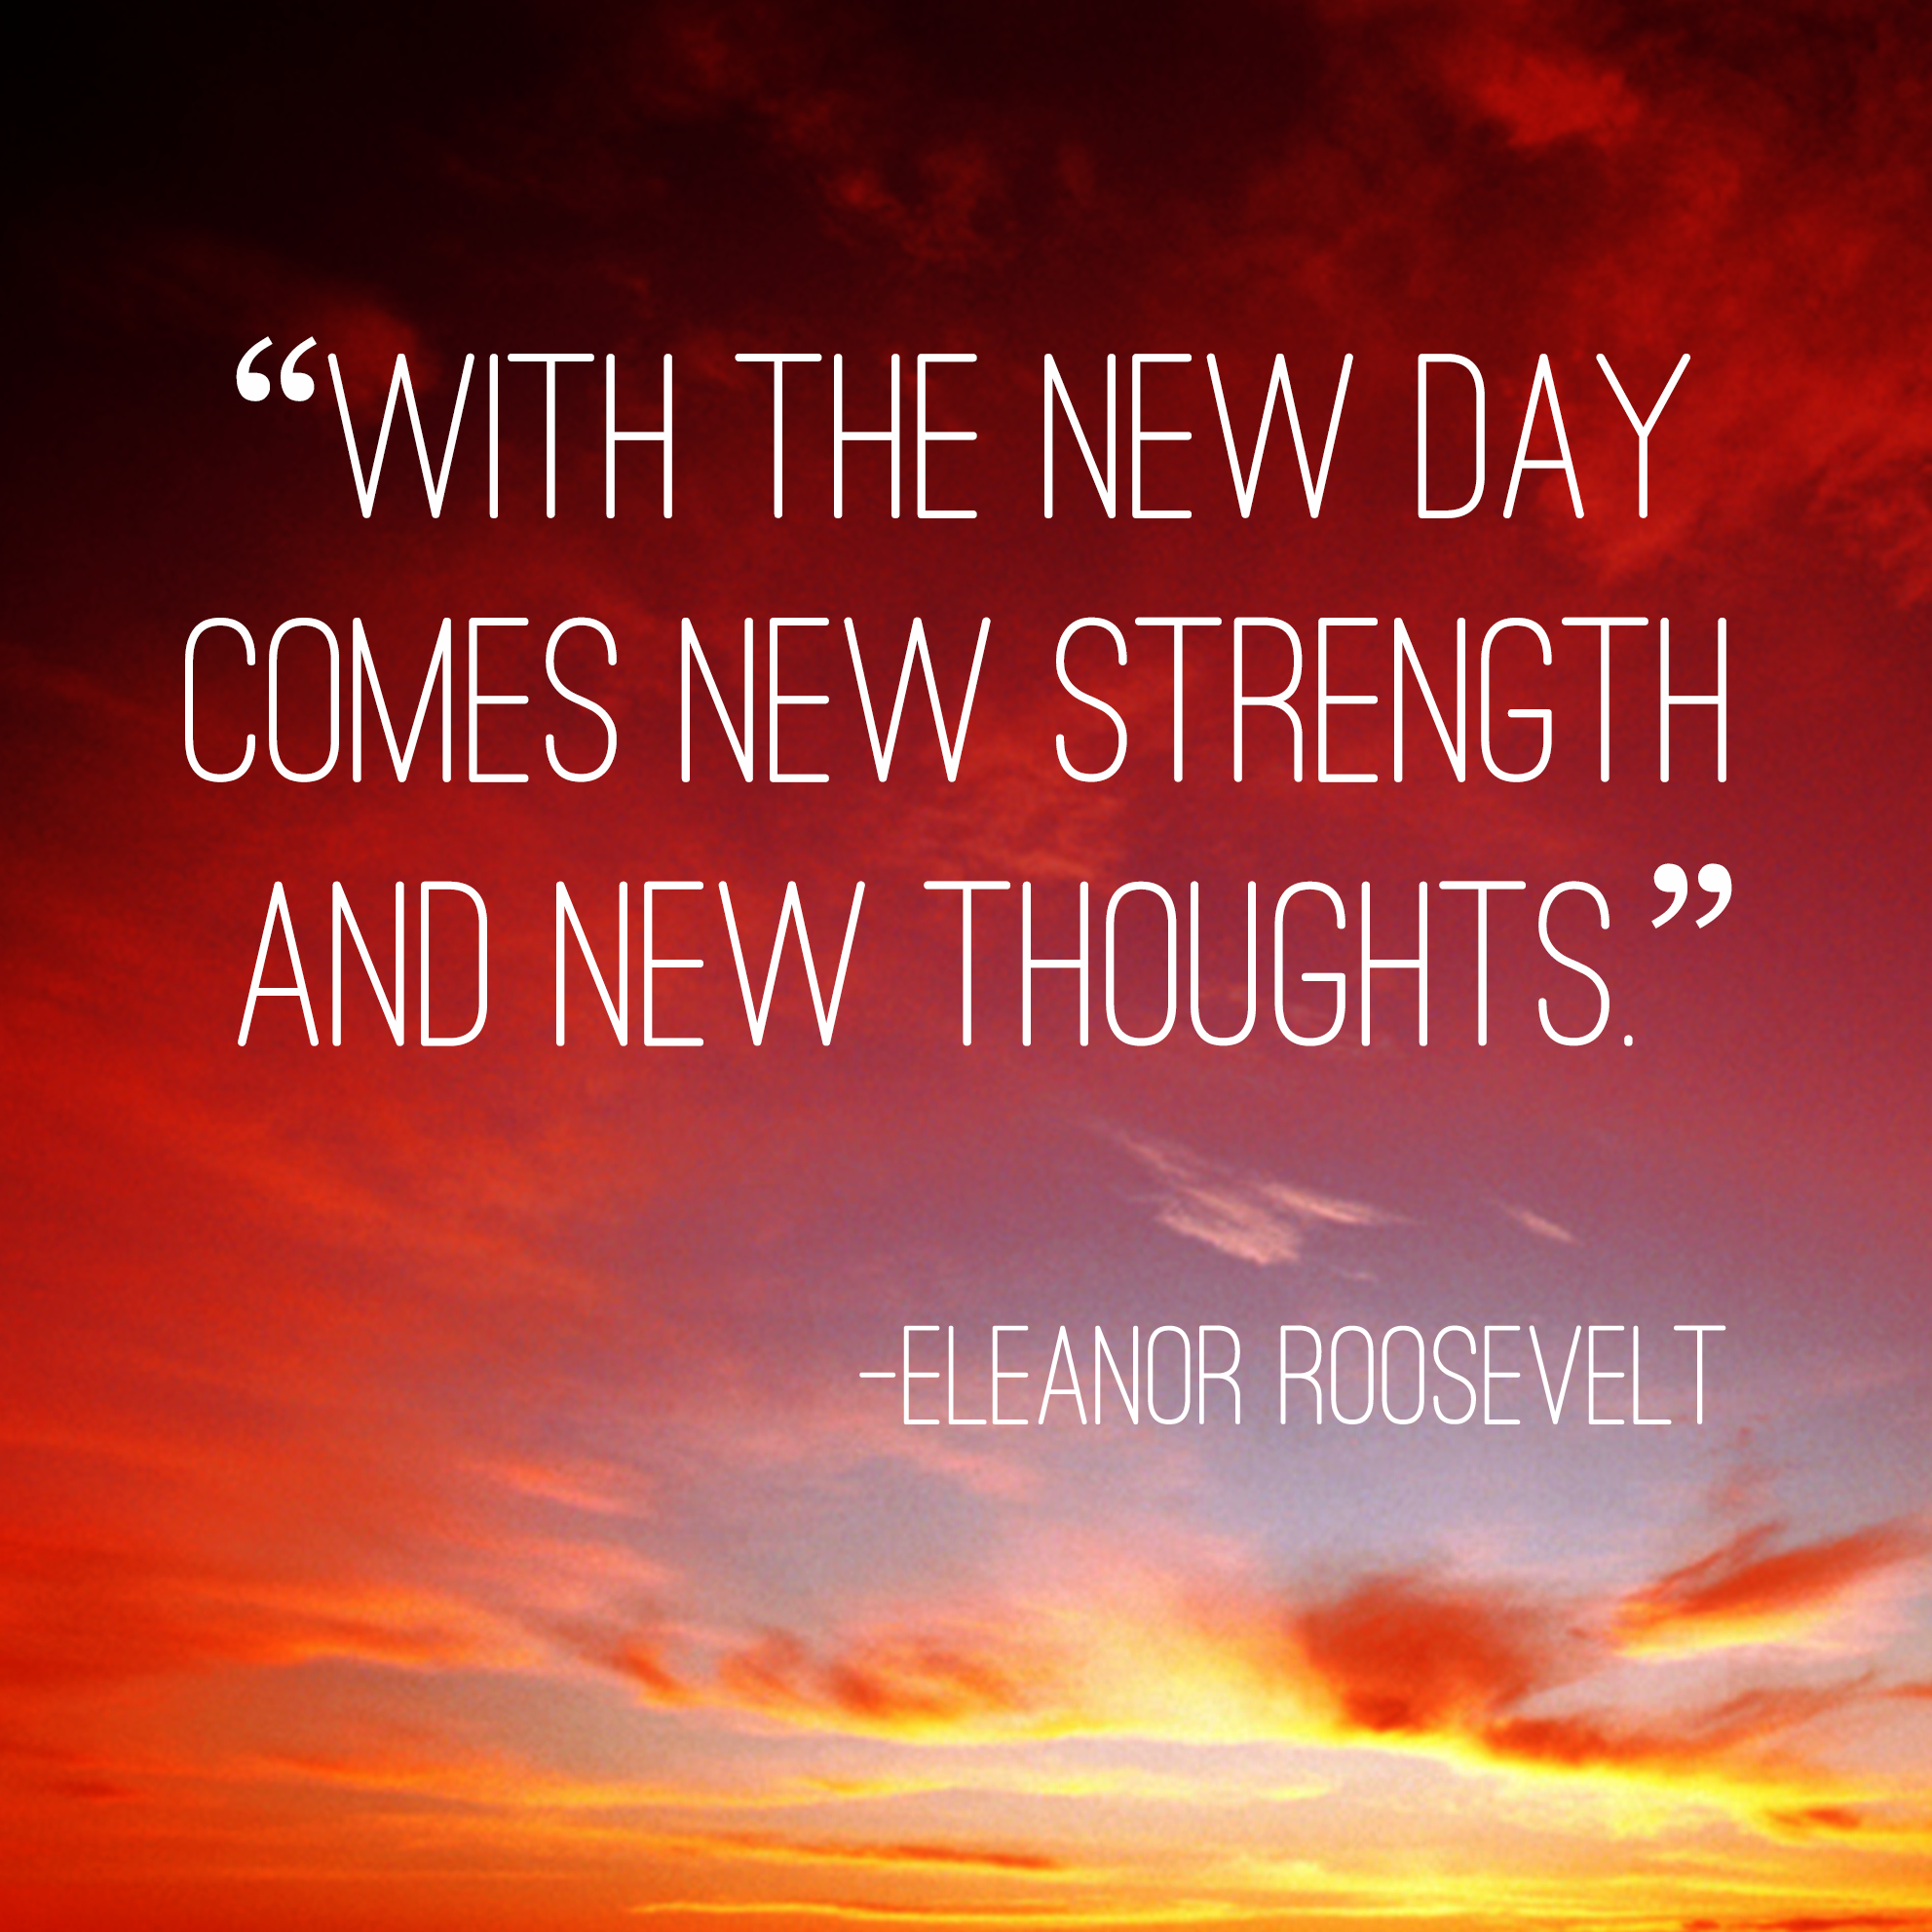 """30 Daily Inspirational Quotes To Start Your Day: """"With The New Day Comes New Strength And New Thoughts"""